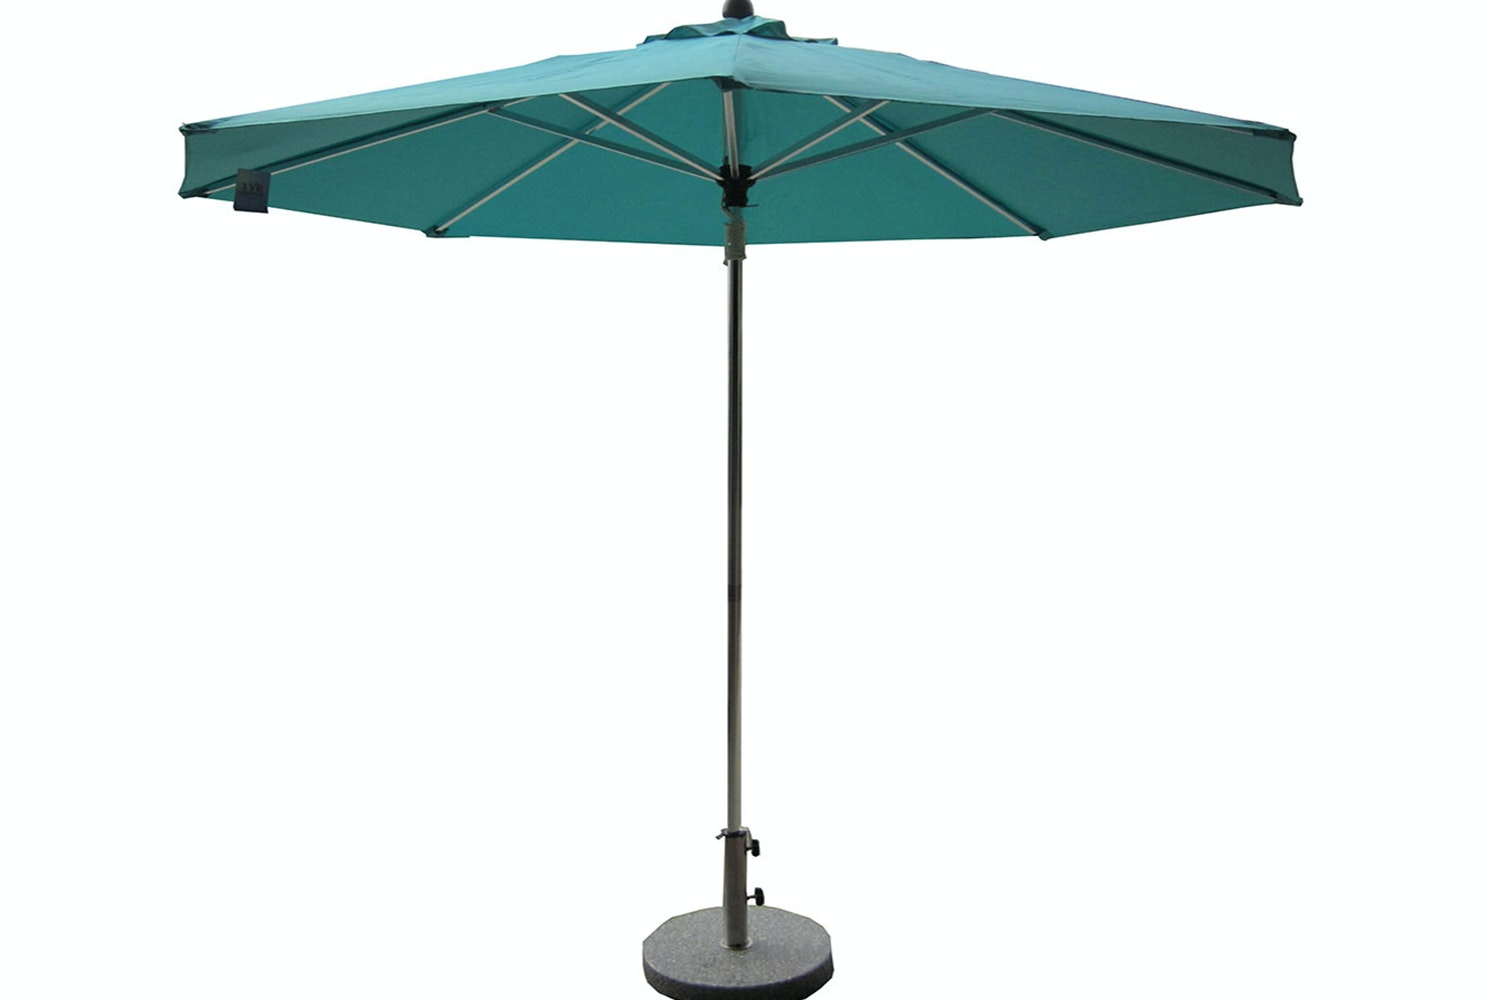 Triton 2.7m Teal Outdoor Umbrella with 25kg Granite Base by Peros